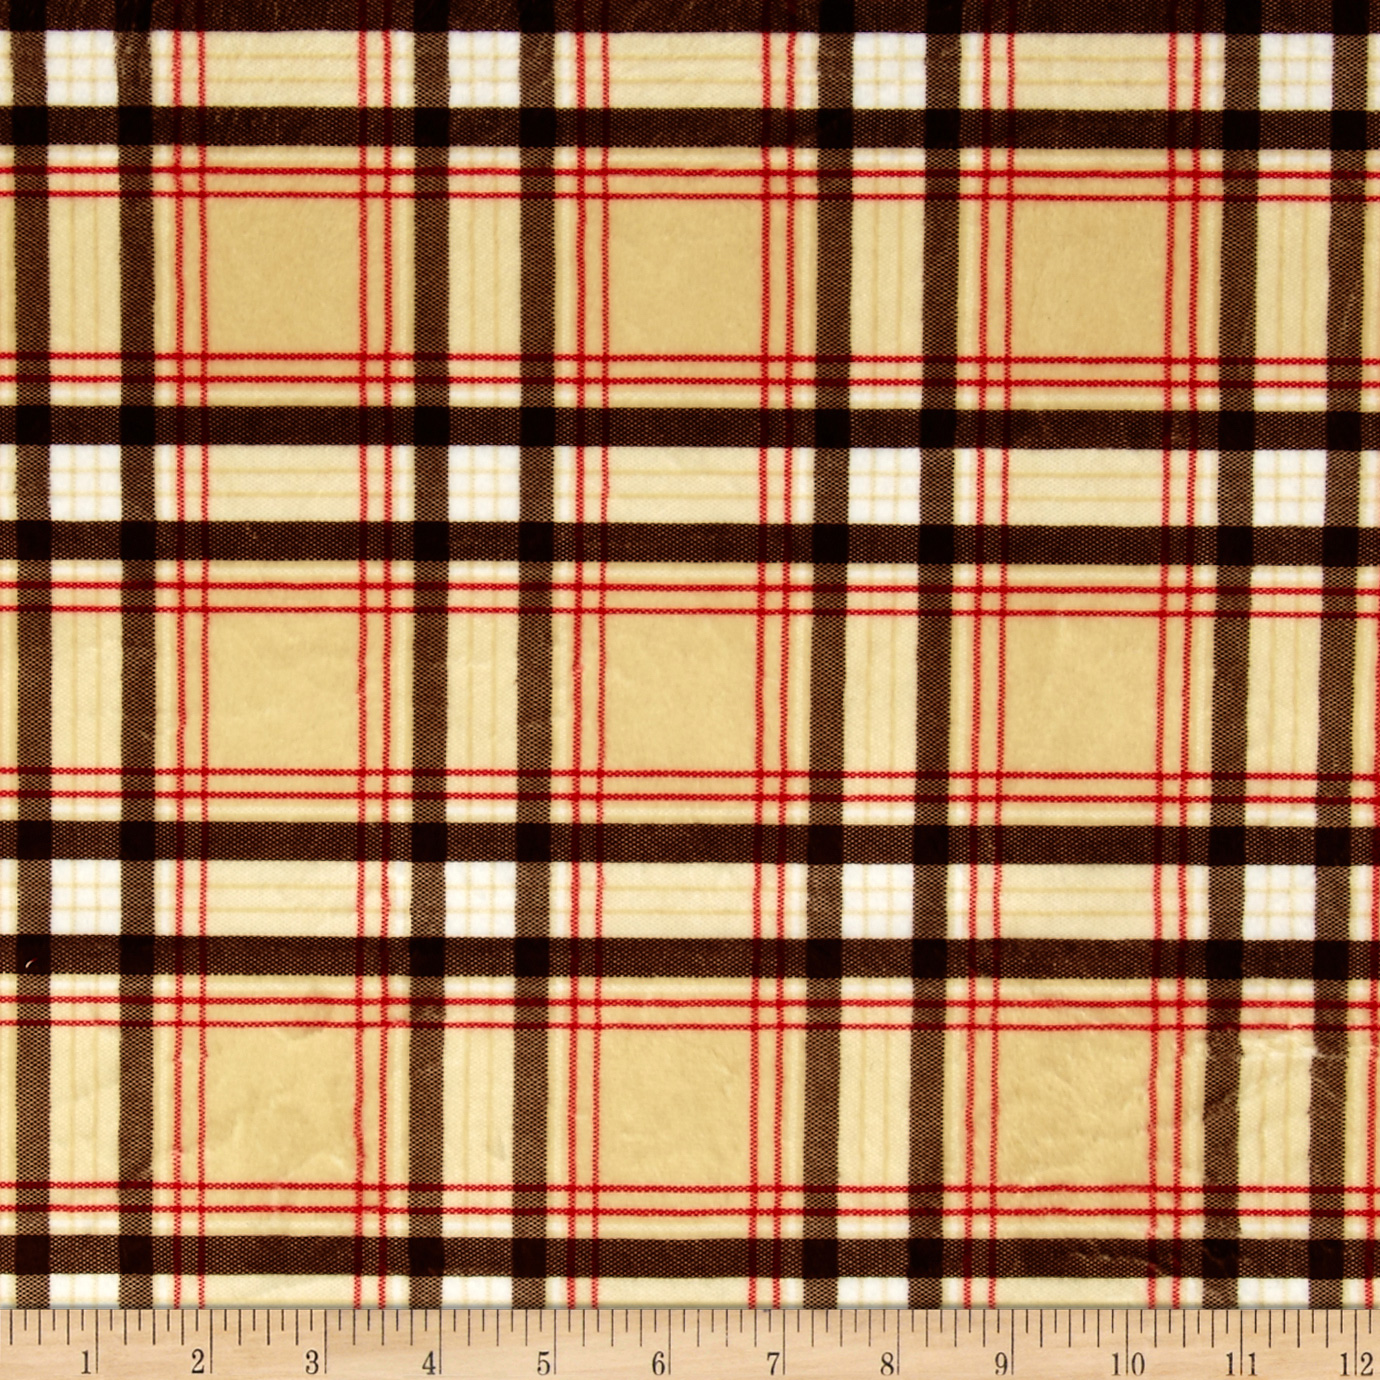 Minky New Plaid Tan Fabric